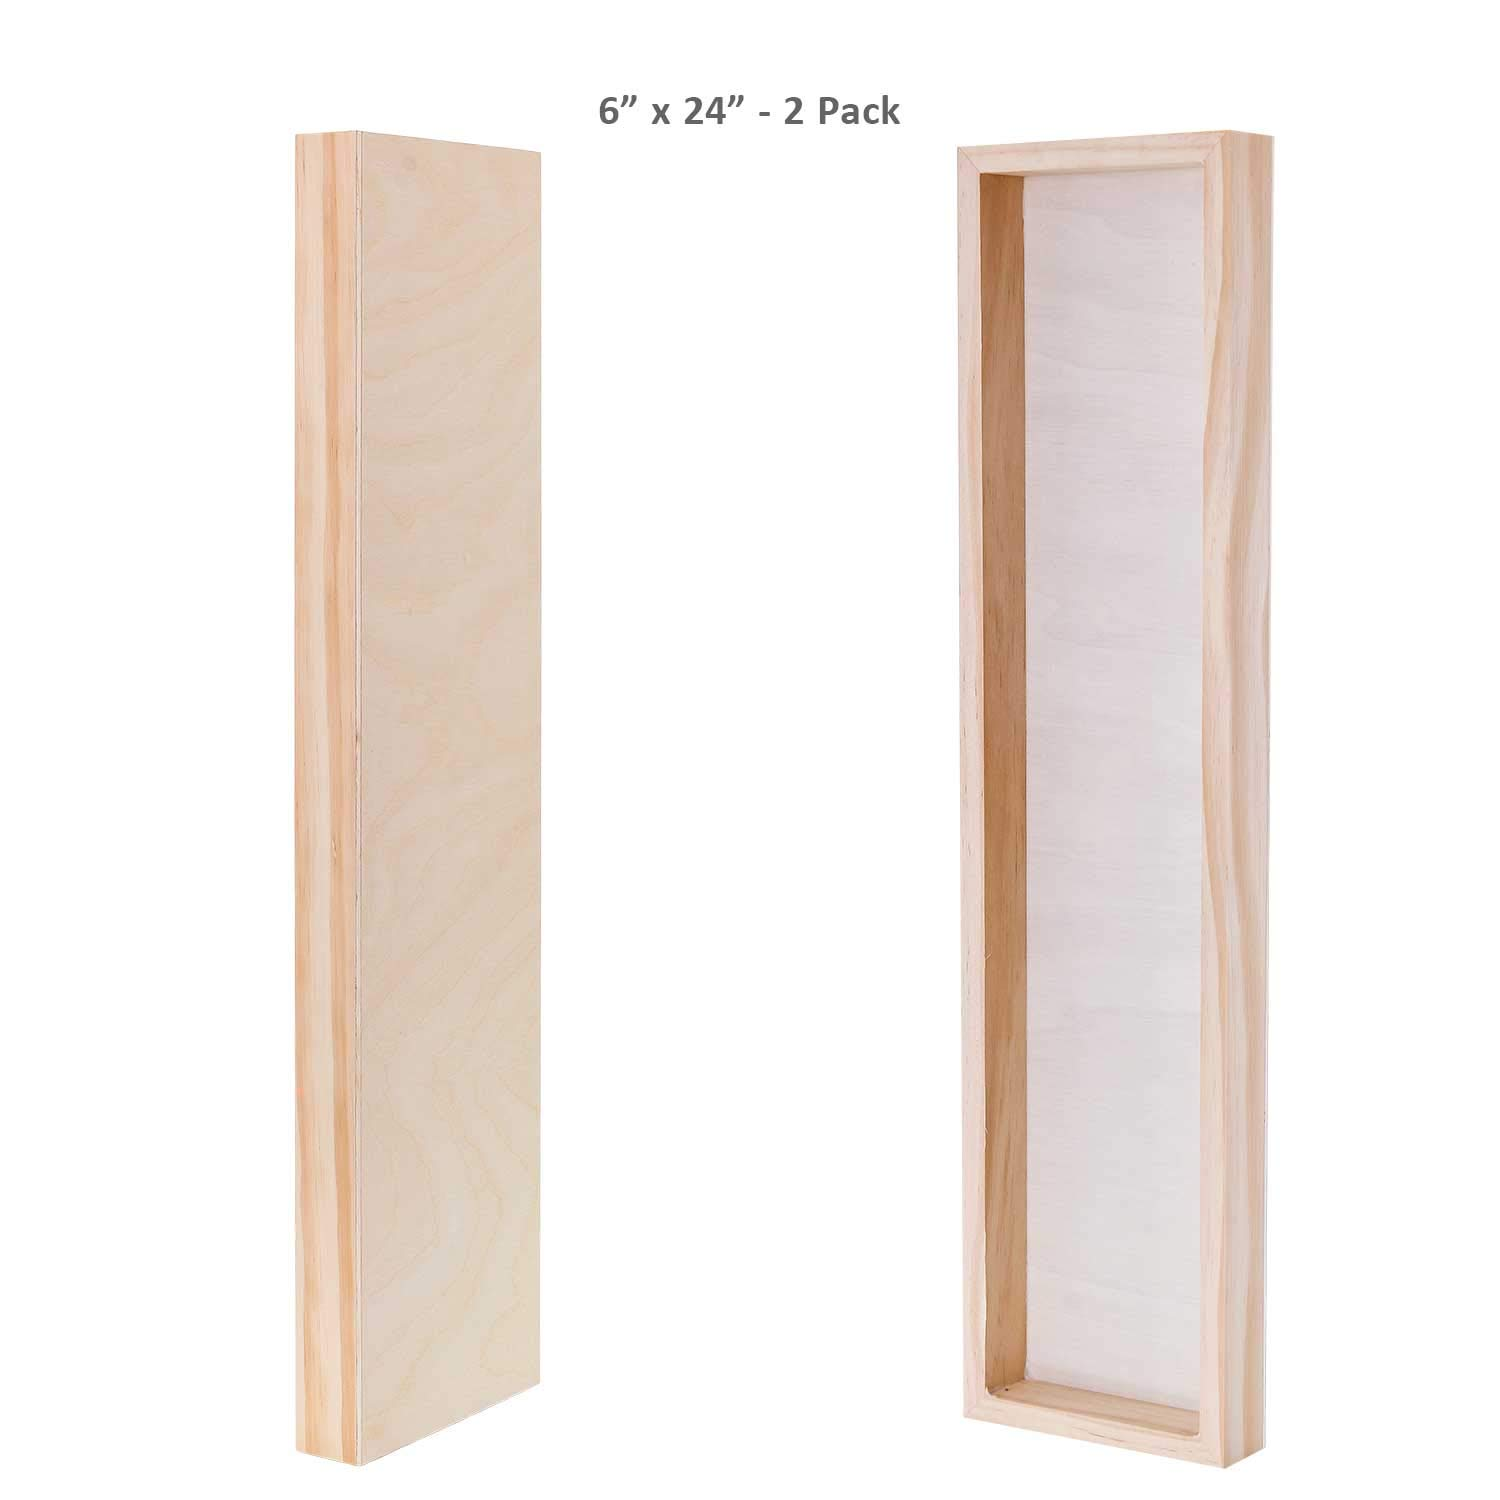 Oil U.S Art Supply 6 x 24 Birch Wood Paint Pouring Panel Boards Acrylic Painting Mixed-Media Craft - Artist Depth Wooden Wall Canvases Encaustic Pack of 2 Gallery 1-1//2 Deep Cradle